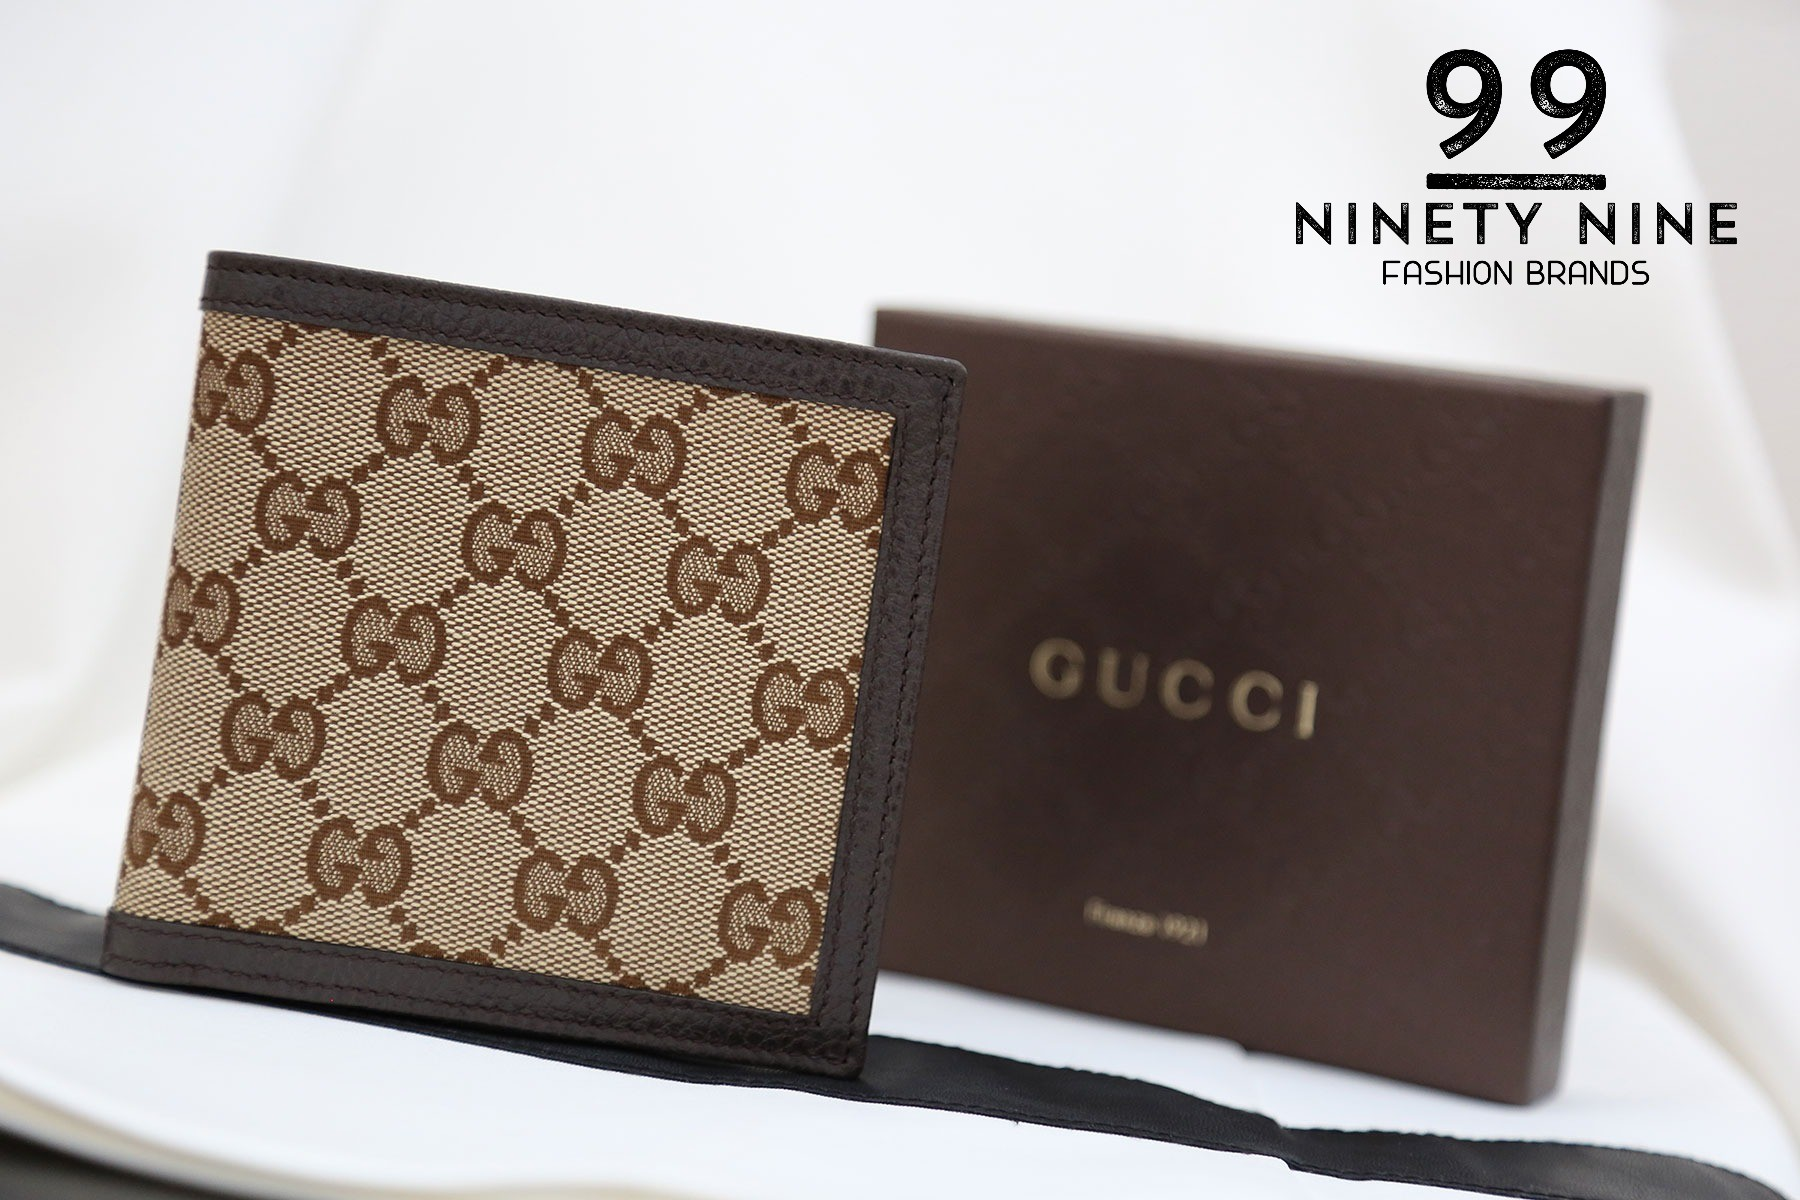 Gucci wallets on sale at 99 Fashion Brands